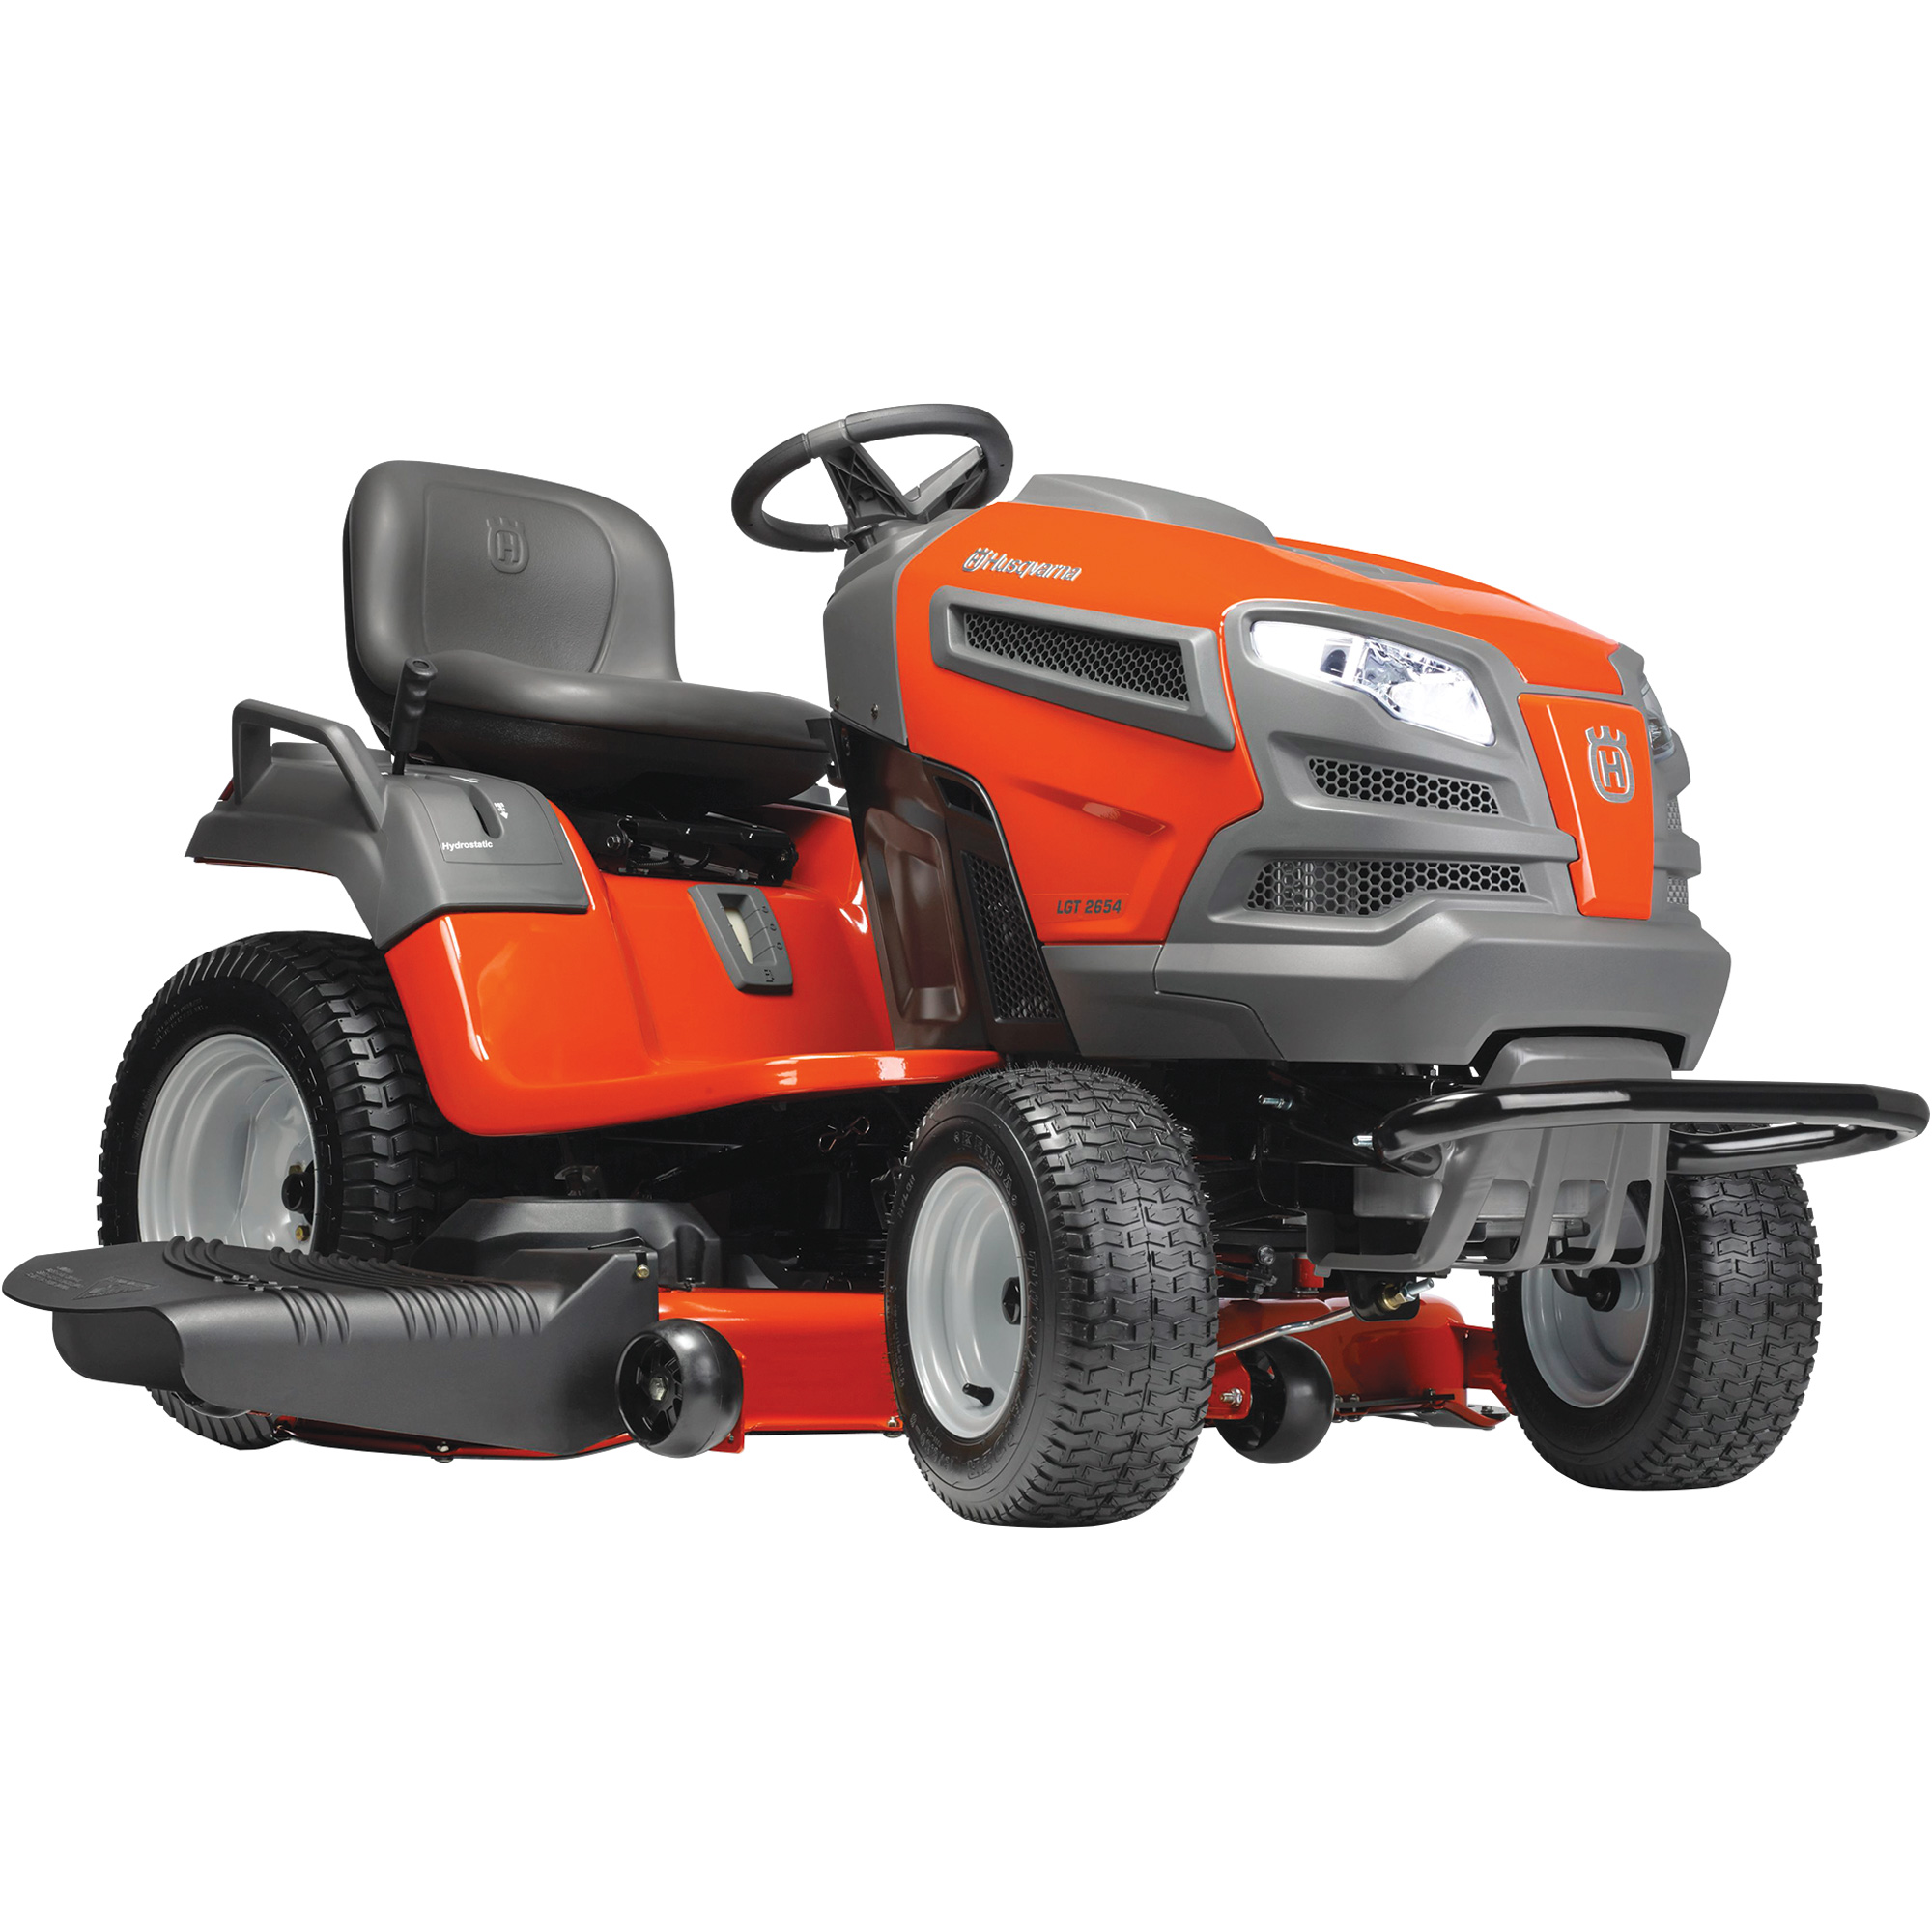 hight resolution of husqvarna riding lawn mower 725cc kohler courage engine 54in